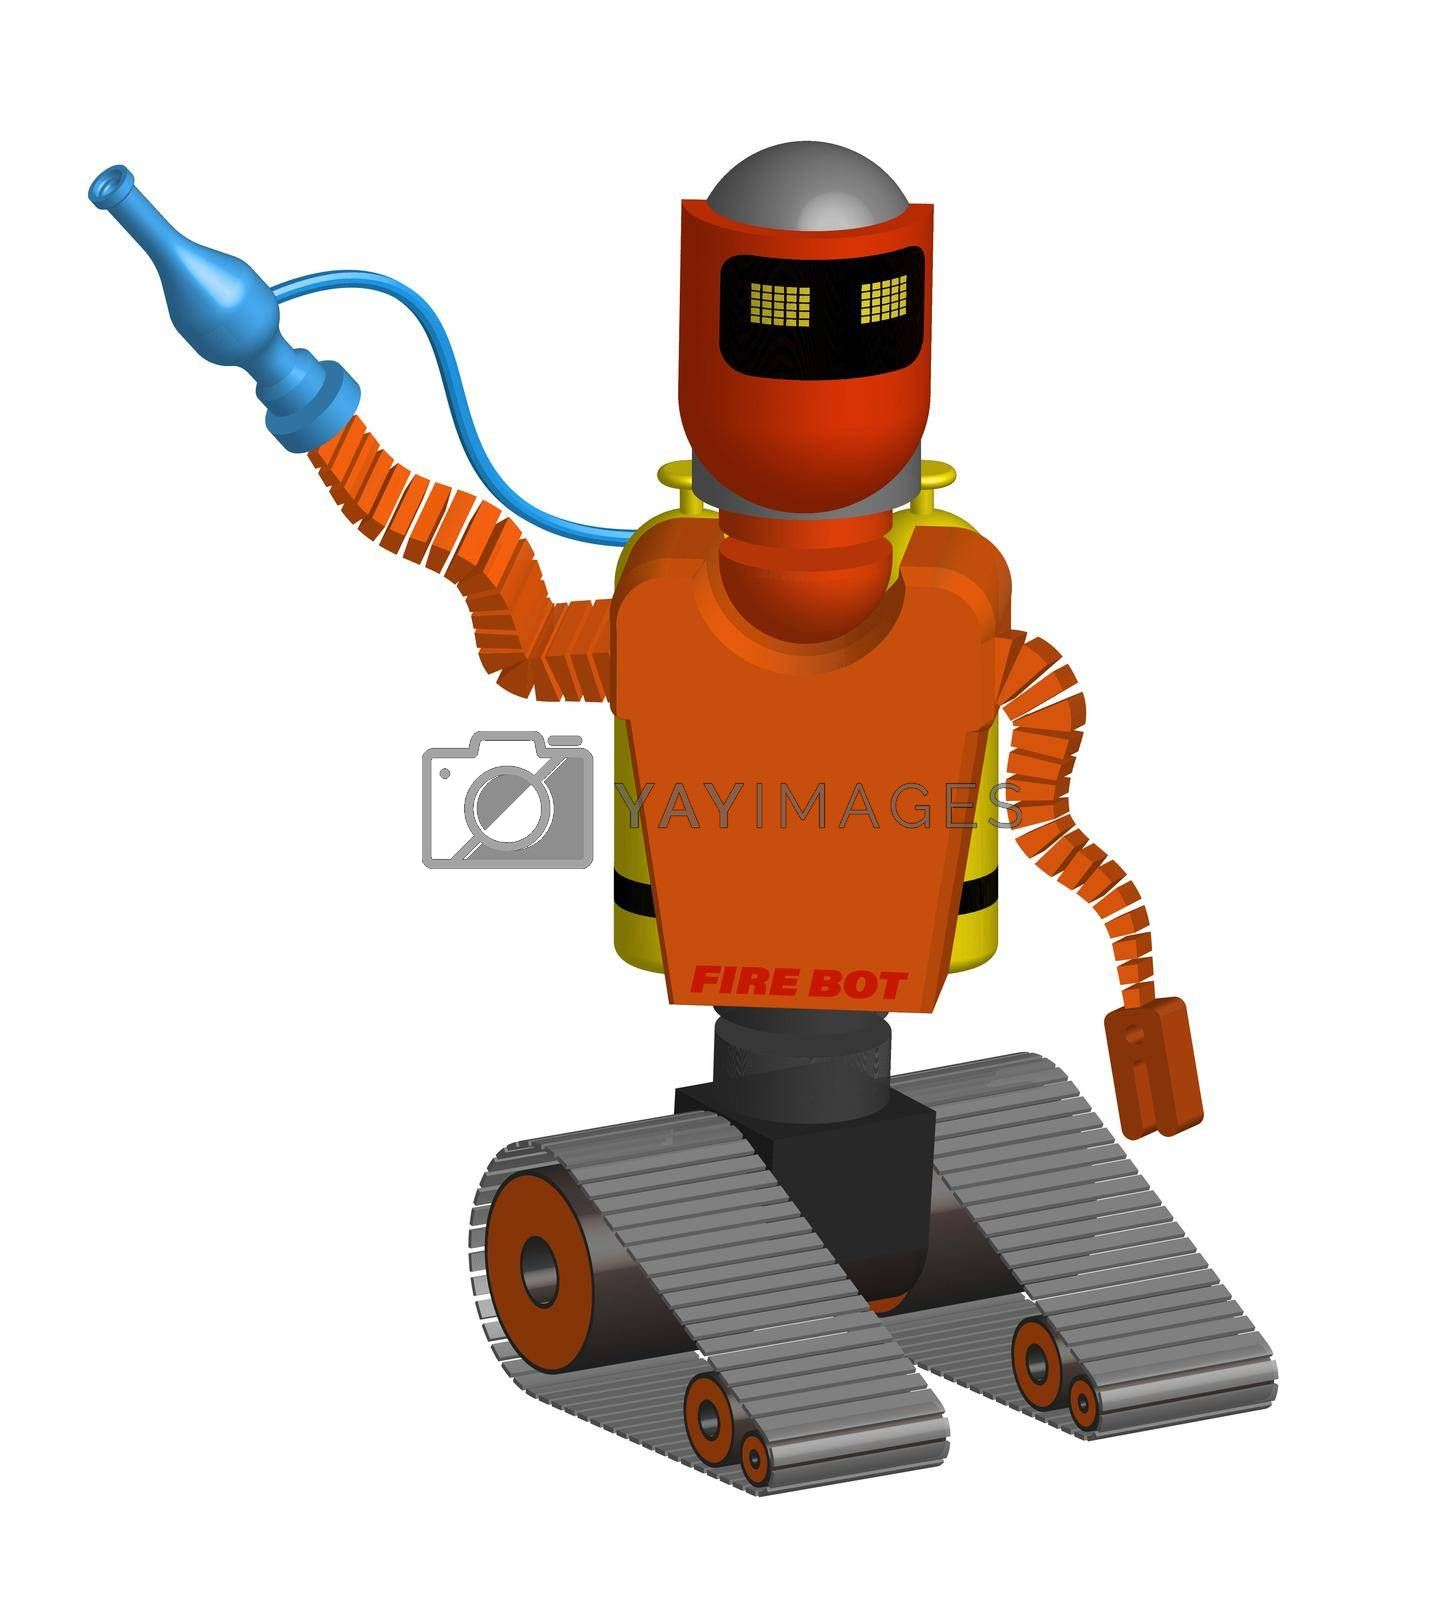 caterpillar robot to extinguish a fire. Doing hazardous work with special equipment. Isolated vector on white background